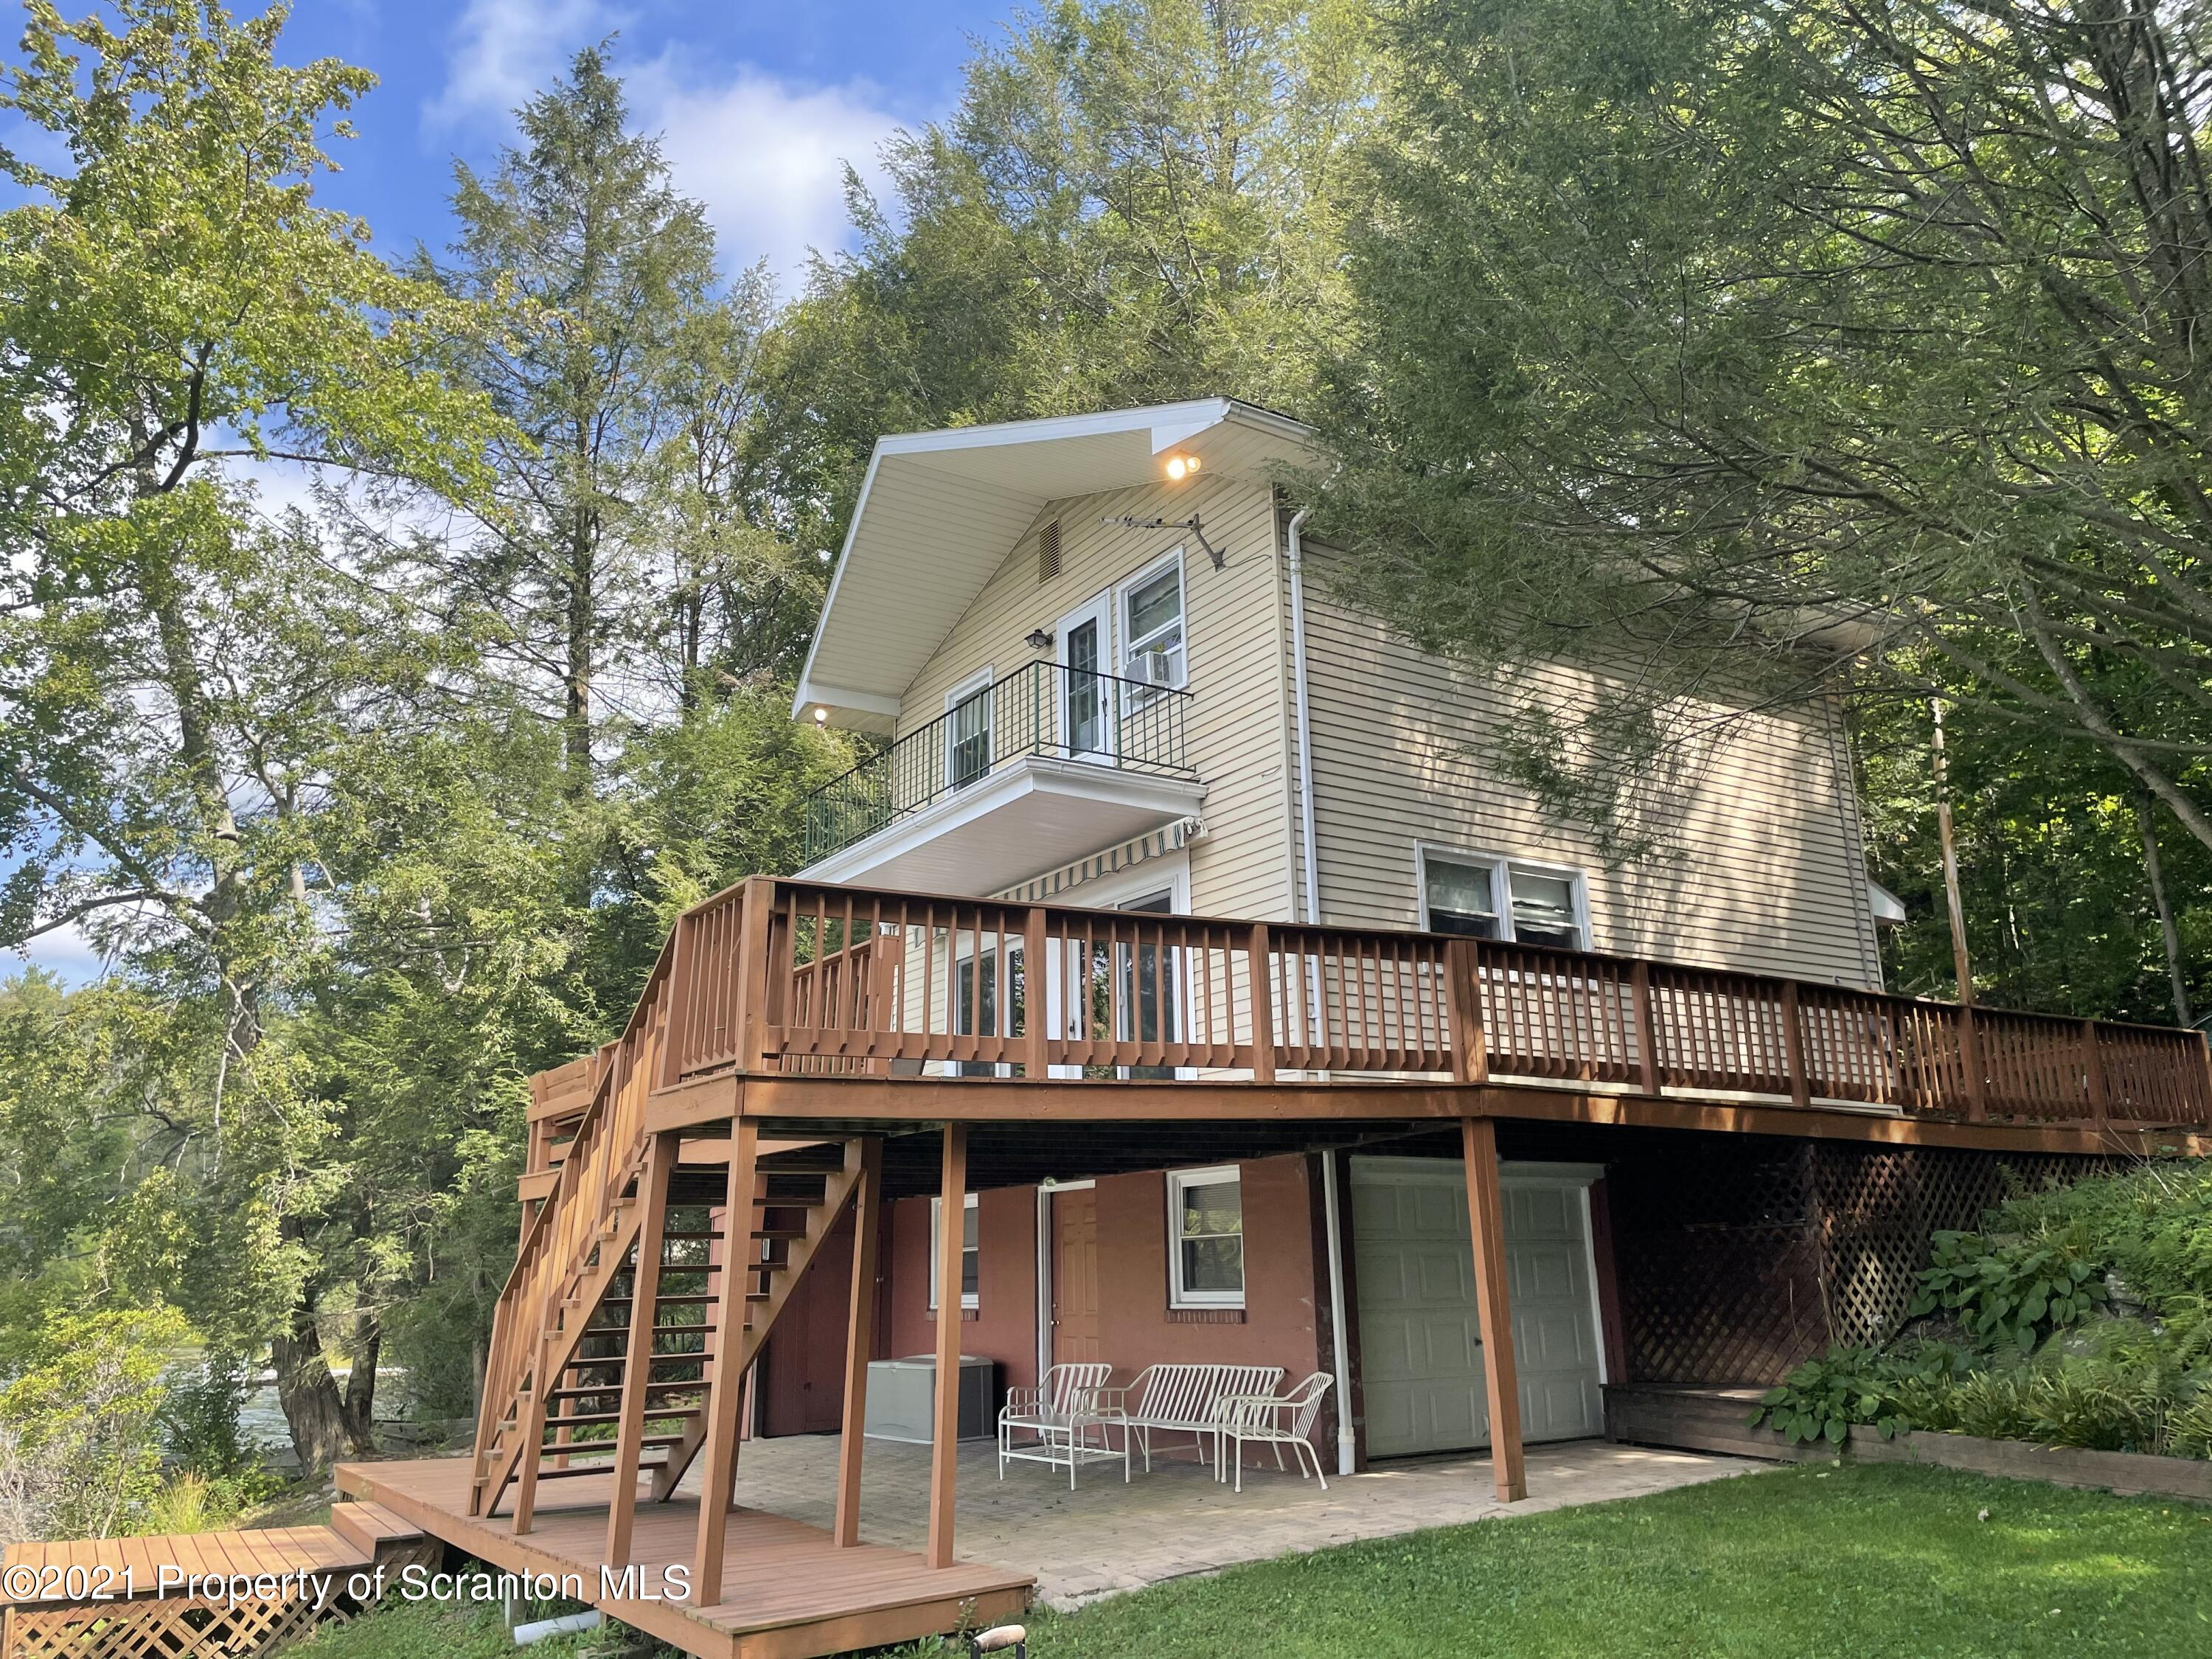 2651 Lake Rd, New Milford, Pennsylvania 18834, 3 Bedrooms Bedrooms, 5 Rooms Rooms,2 BathroomsBathrooms,Single Family,For Sale,Lake,21-4298